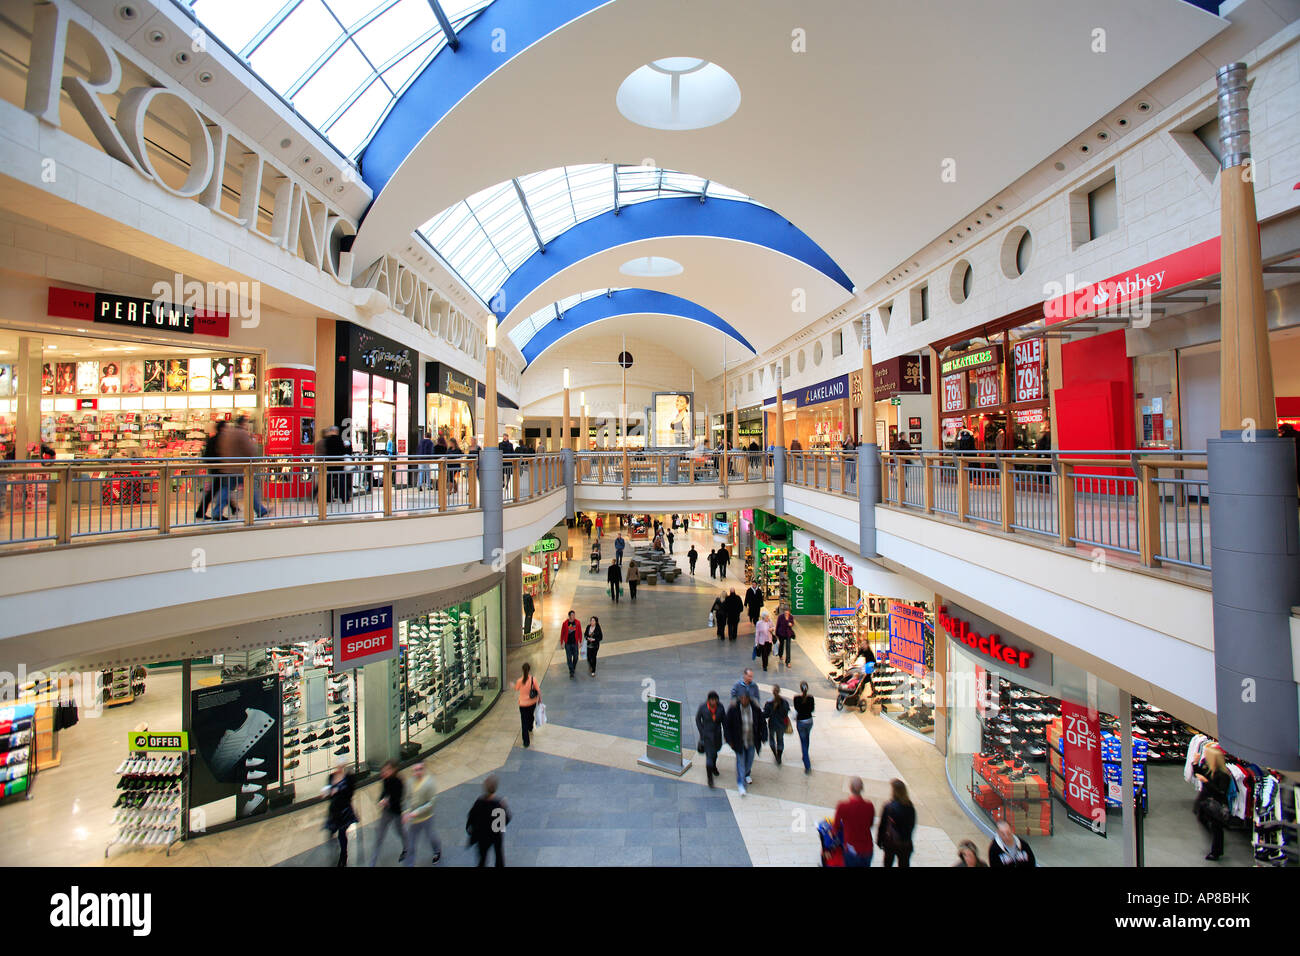 Best United Kingdom Shopping: See reviews and photos of shops, malls & outlets in United Kingdom on TripAdvisor.